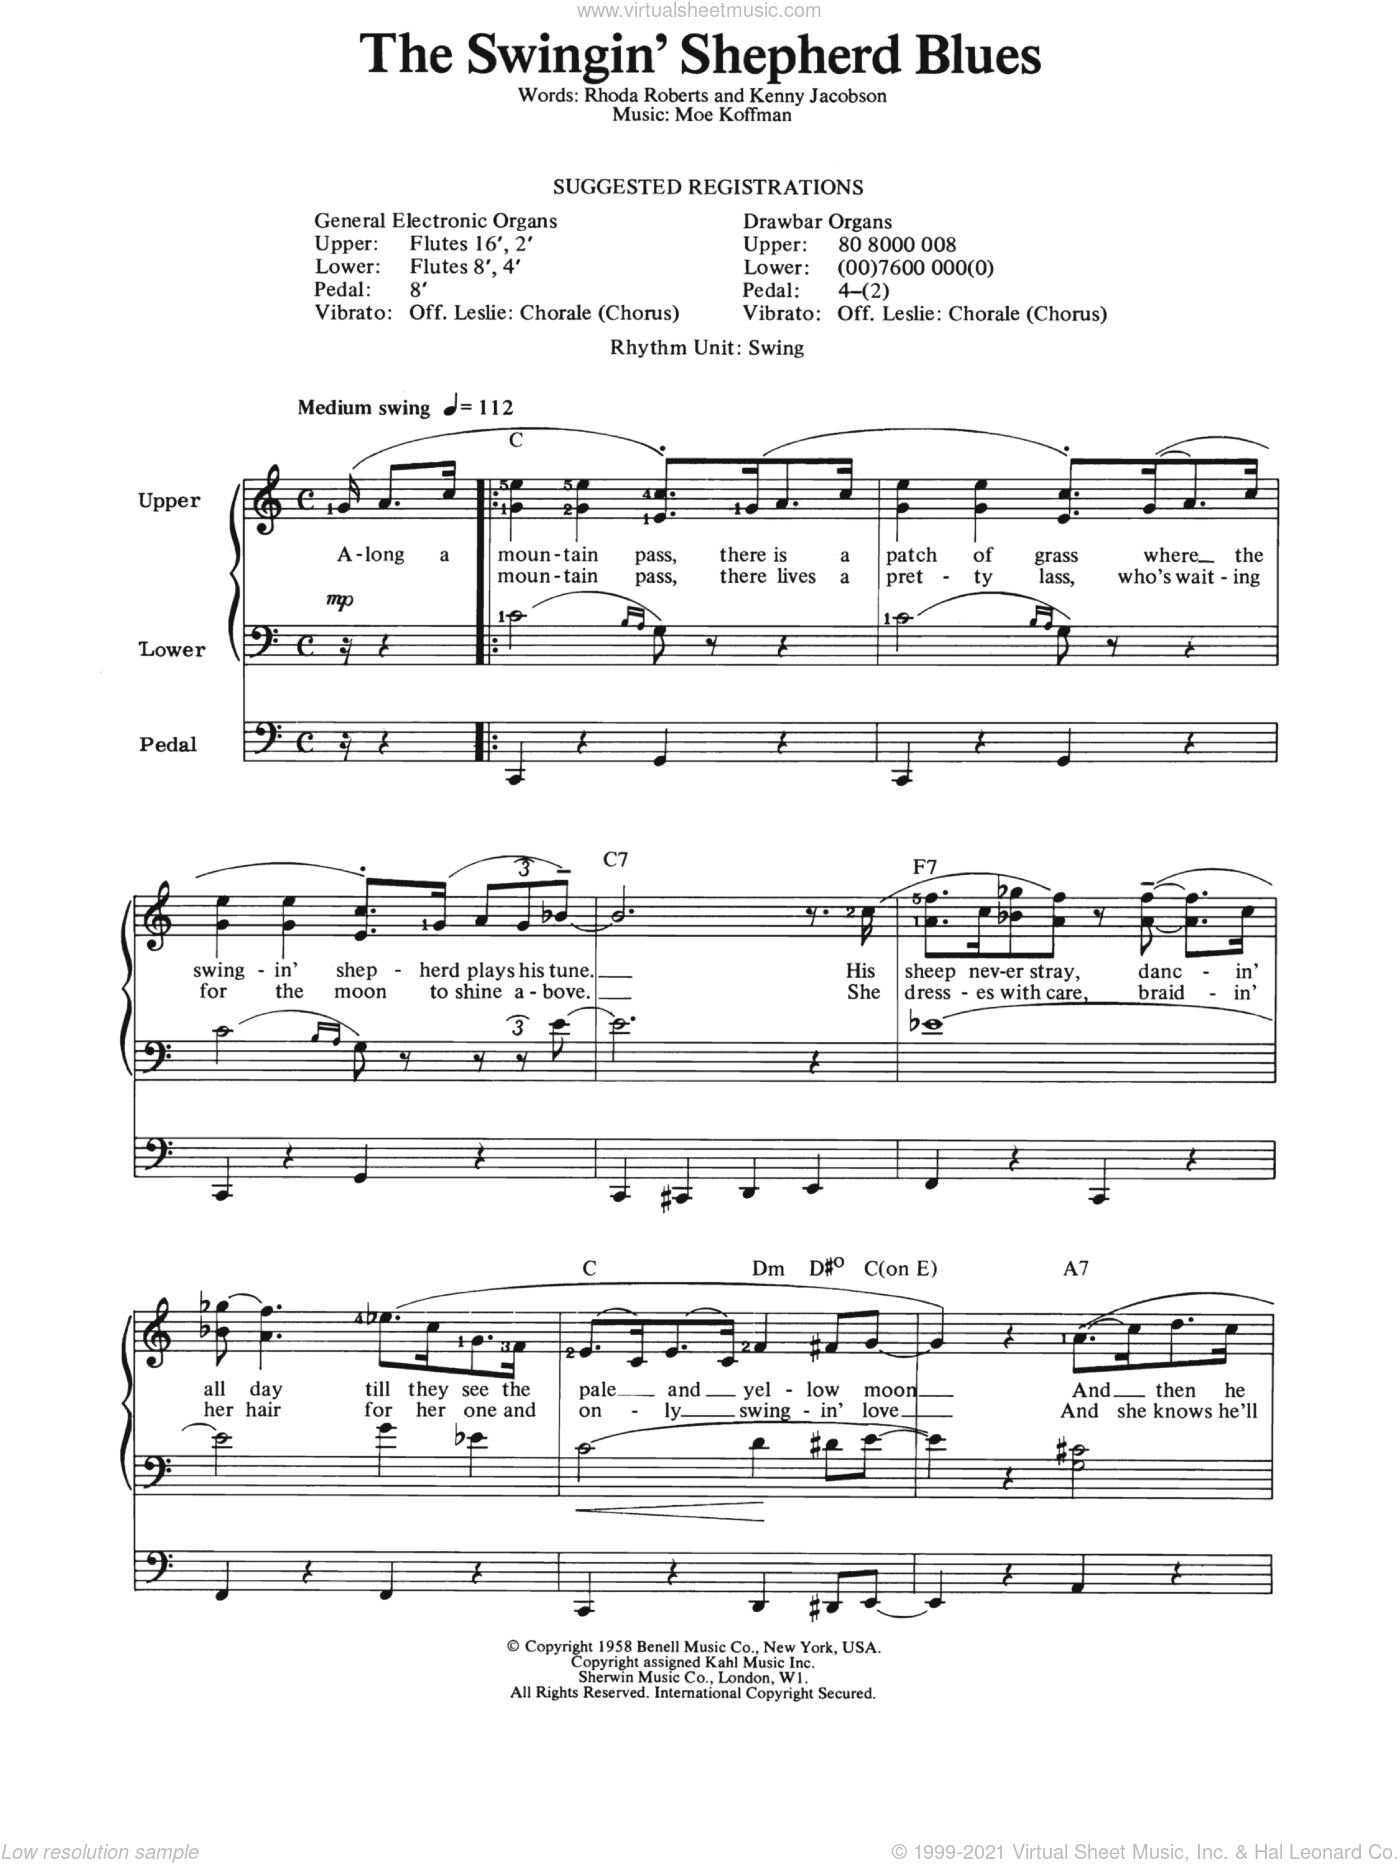 Swingin' Shepherd Blues sheet music for organ by Rhoda Roberts